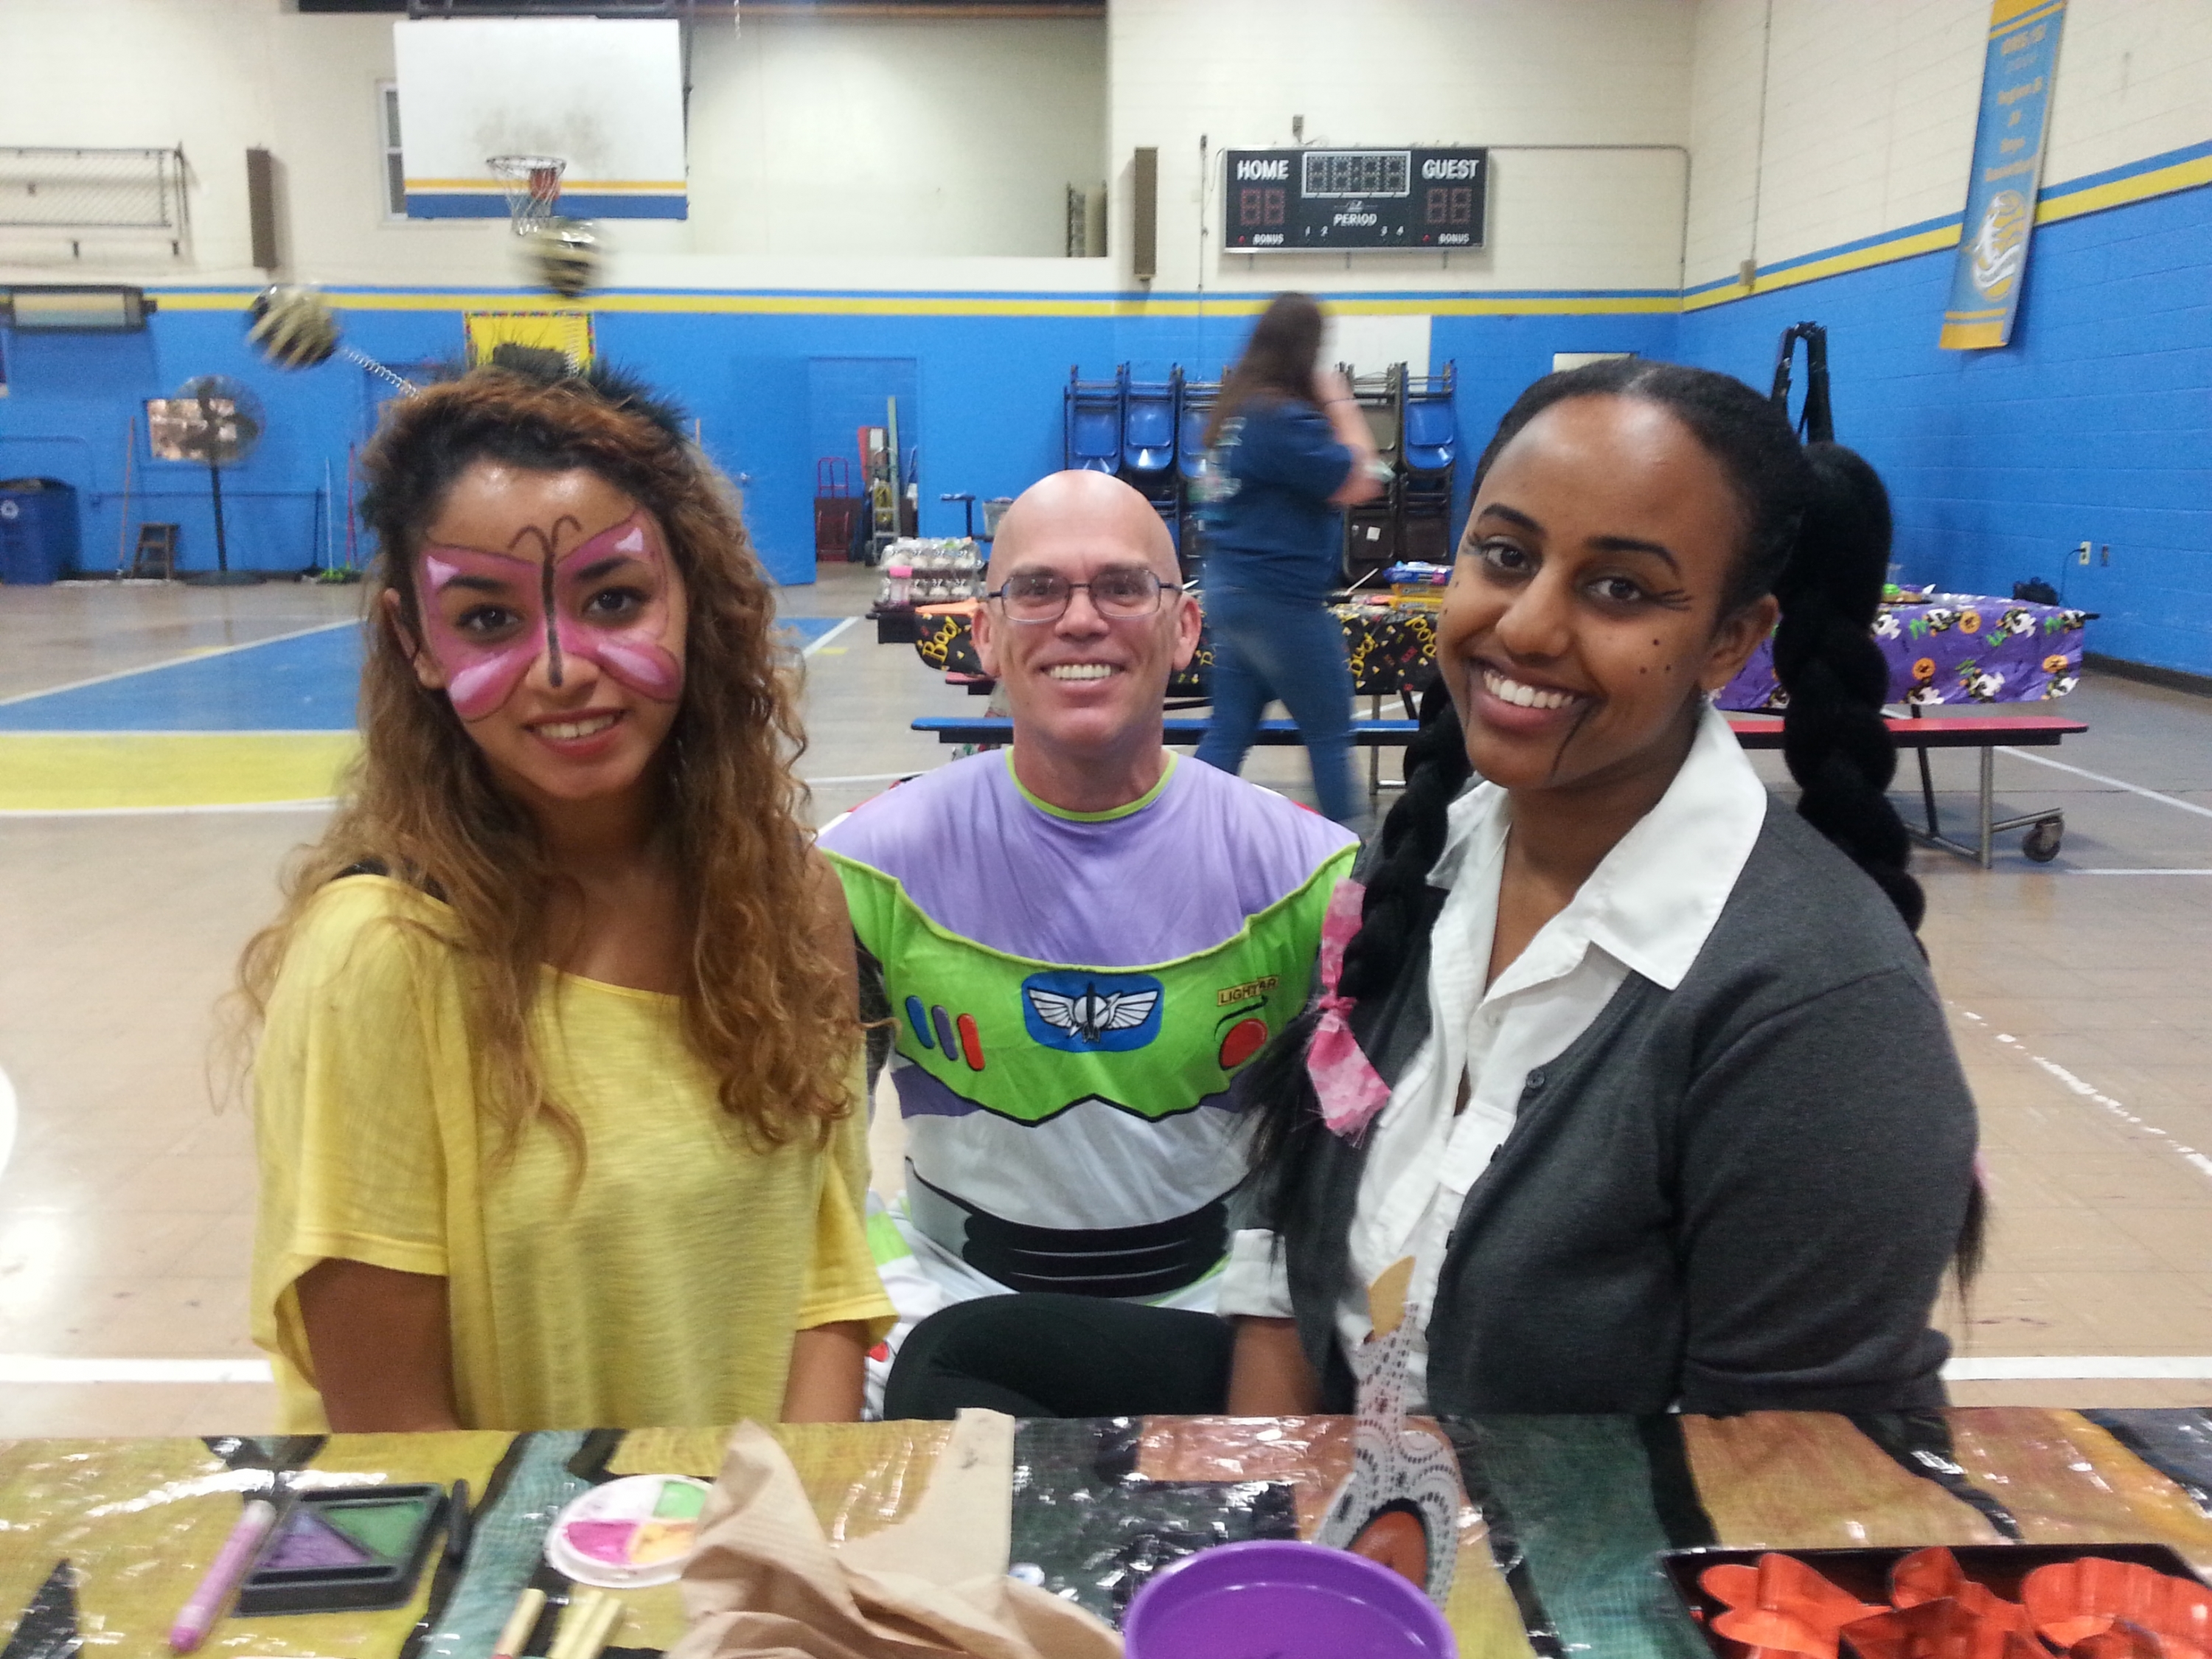 Mimi Ali '17, William Hazley '18, and Elizabeth Yohannes '17